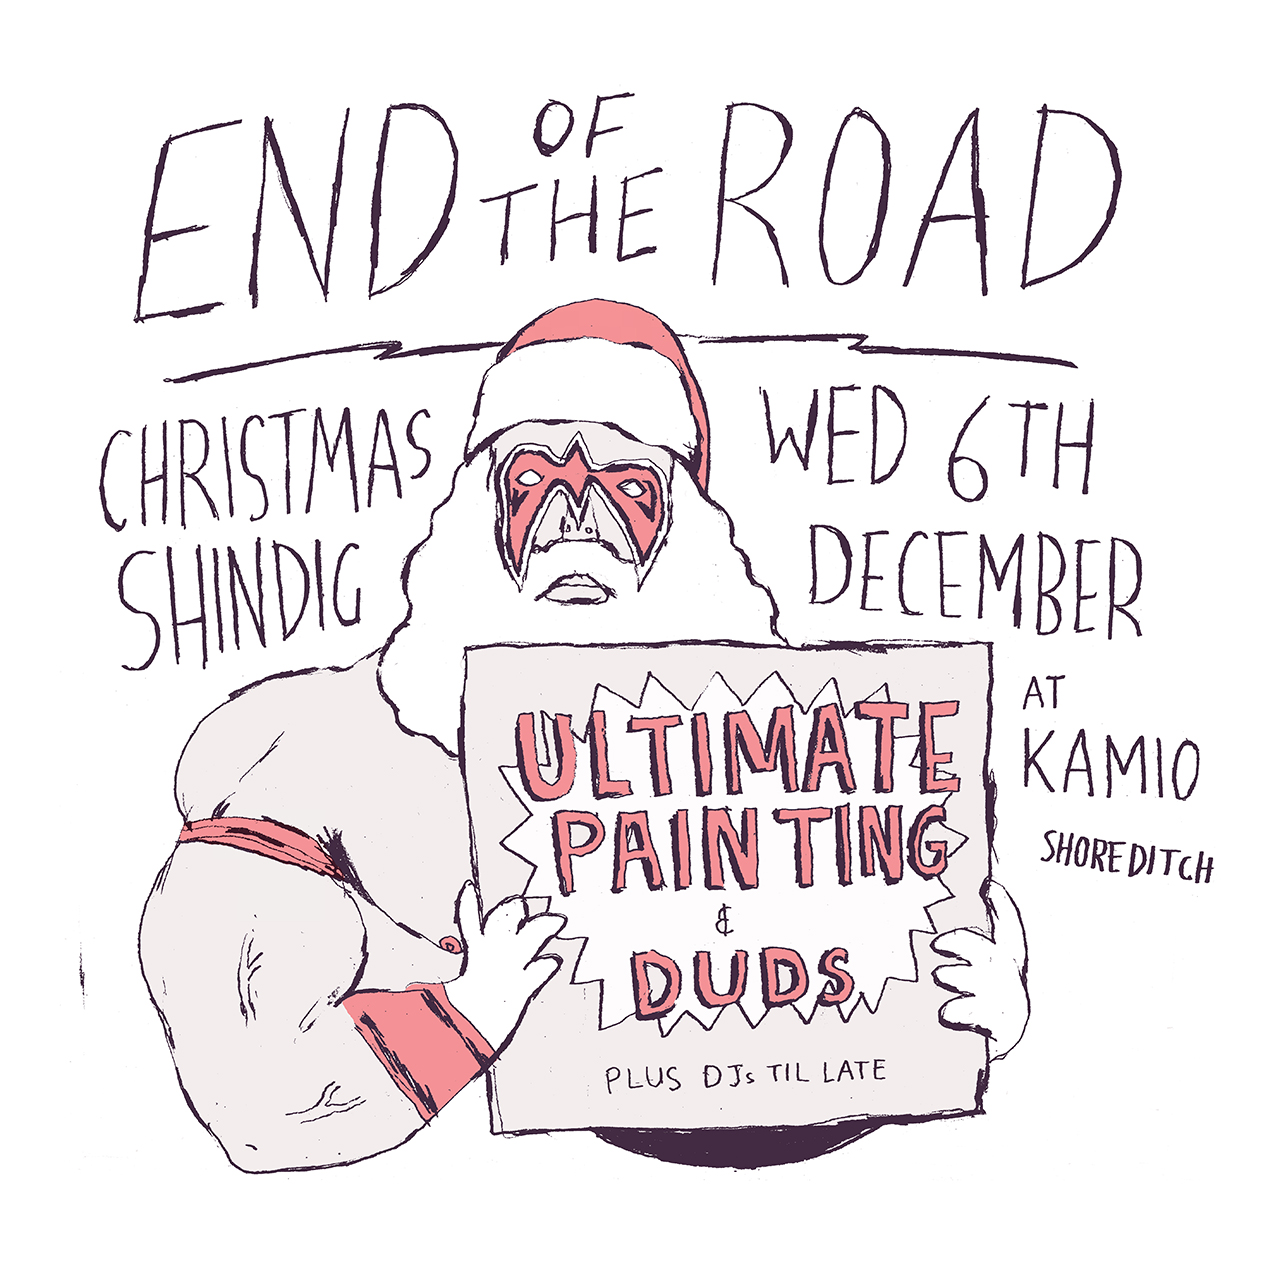 EOTR Festival Christmas Party Poster 2017